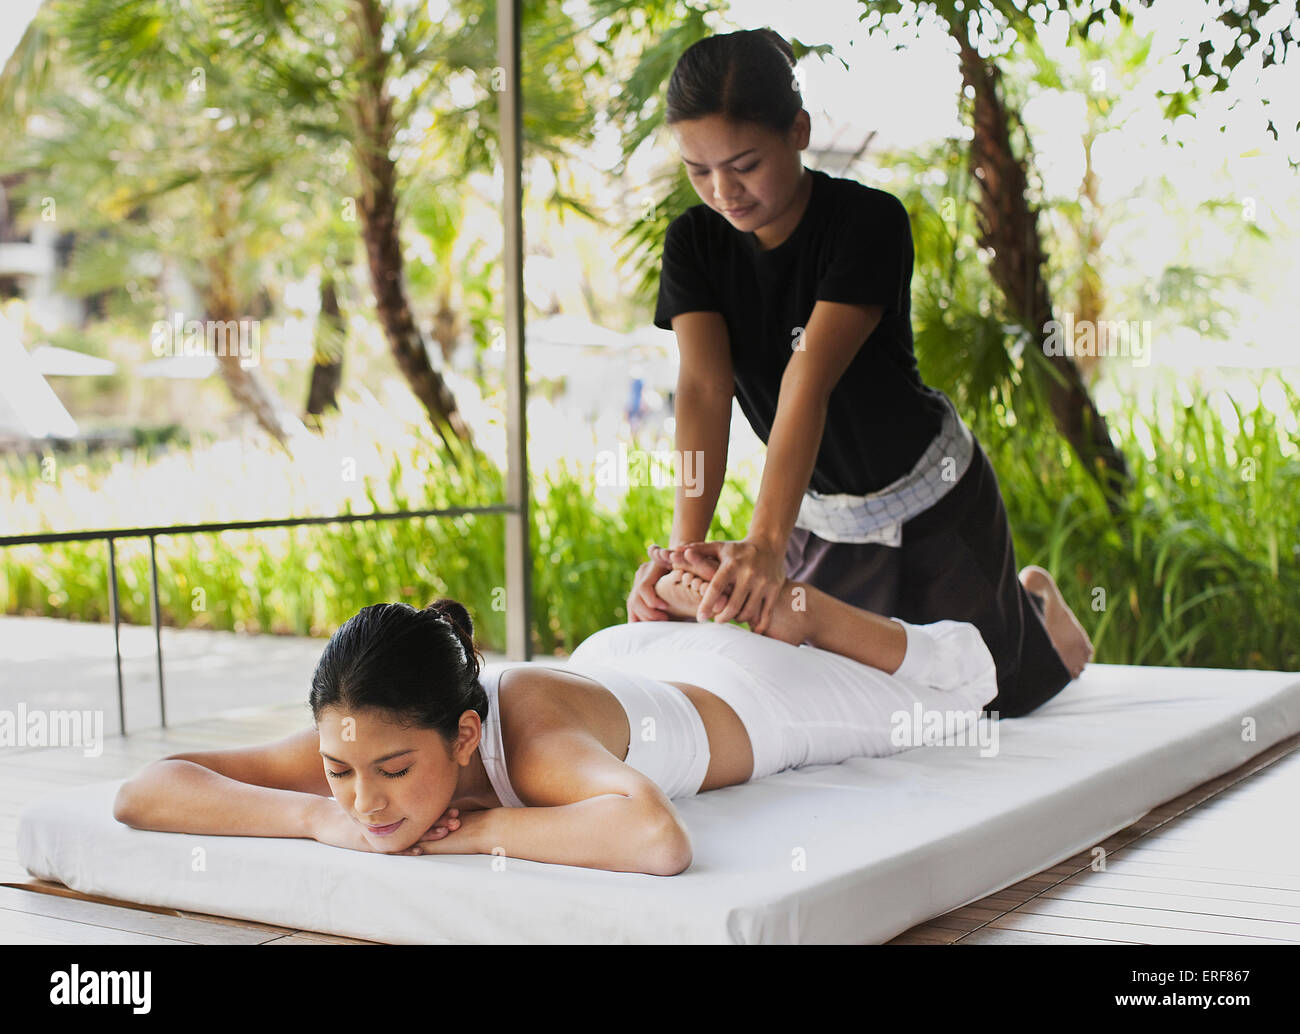 A woman receives a Thai Massage in an outdoor cabana by the main pool. - Stock Image